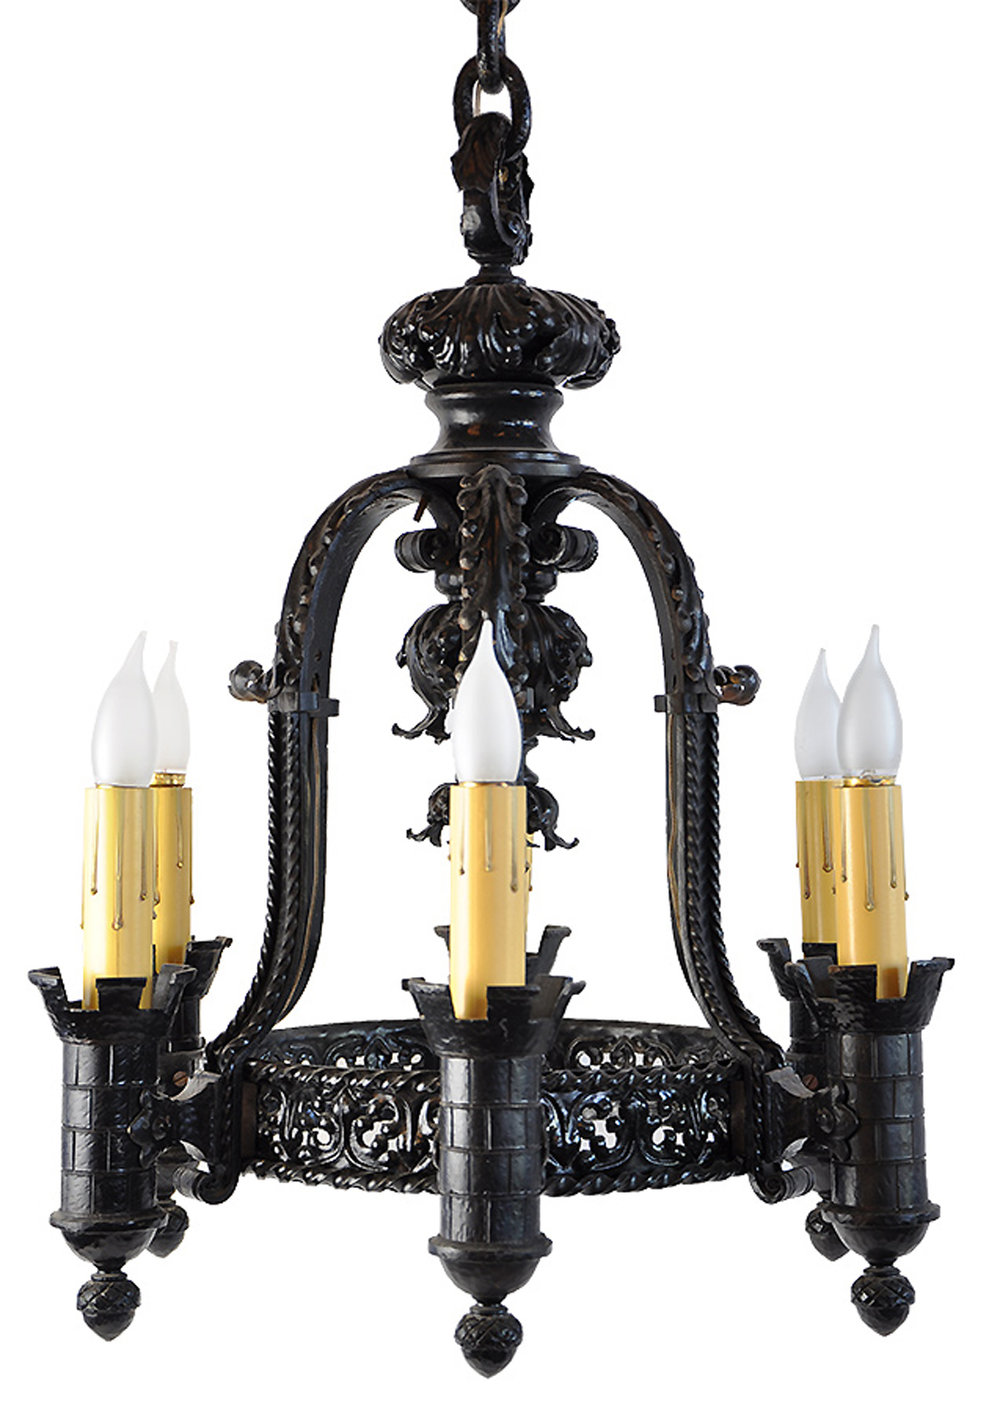 45251-gothic-6-light-of-iron-with-turrets.jpg